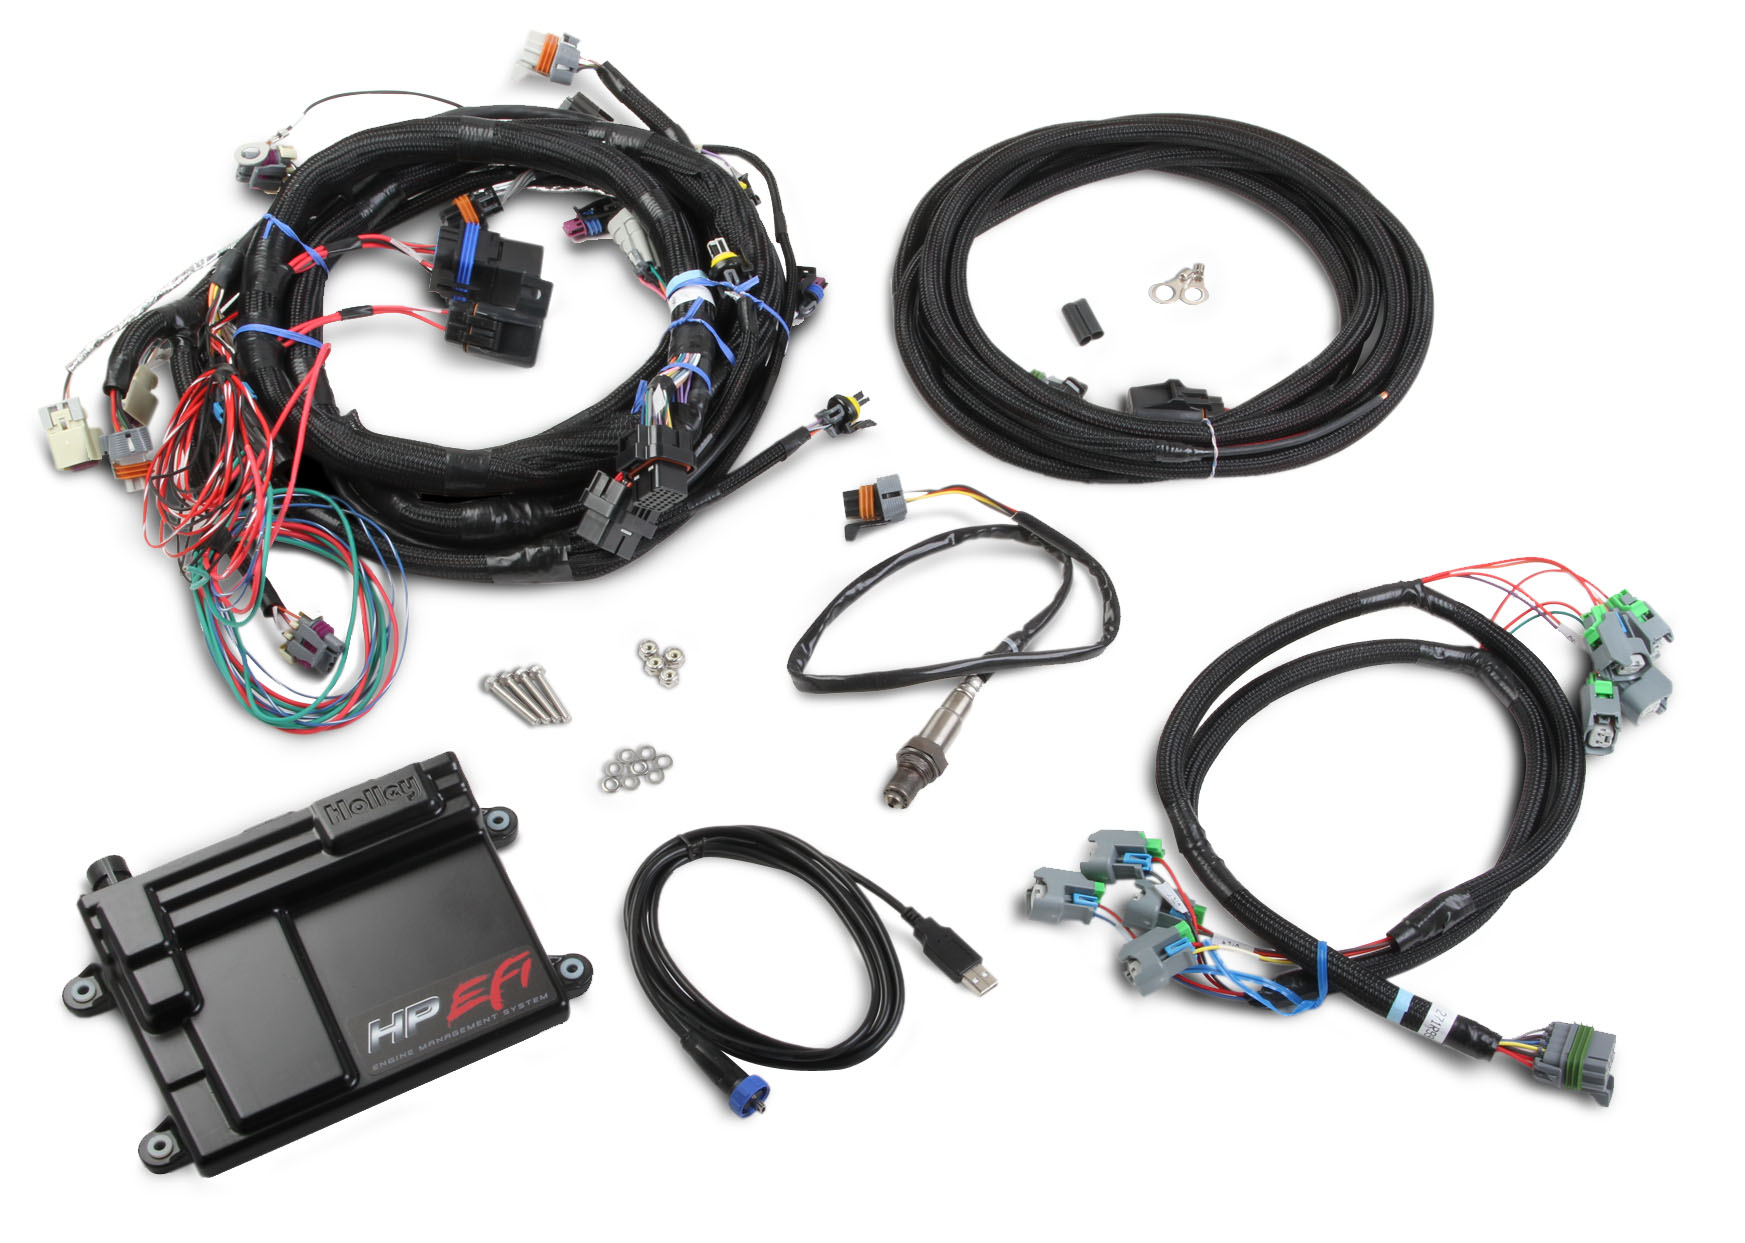 Holley Hp Efi Ecu Amp Harness Kit Ls2 3 7 Mullenix Racing